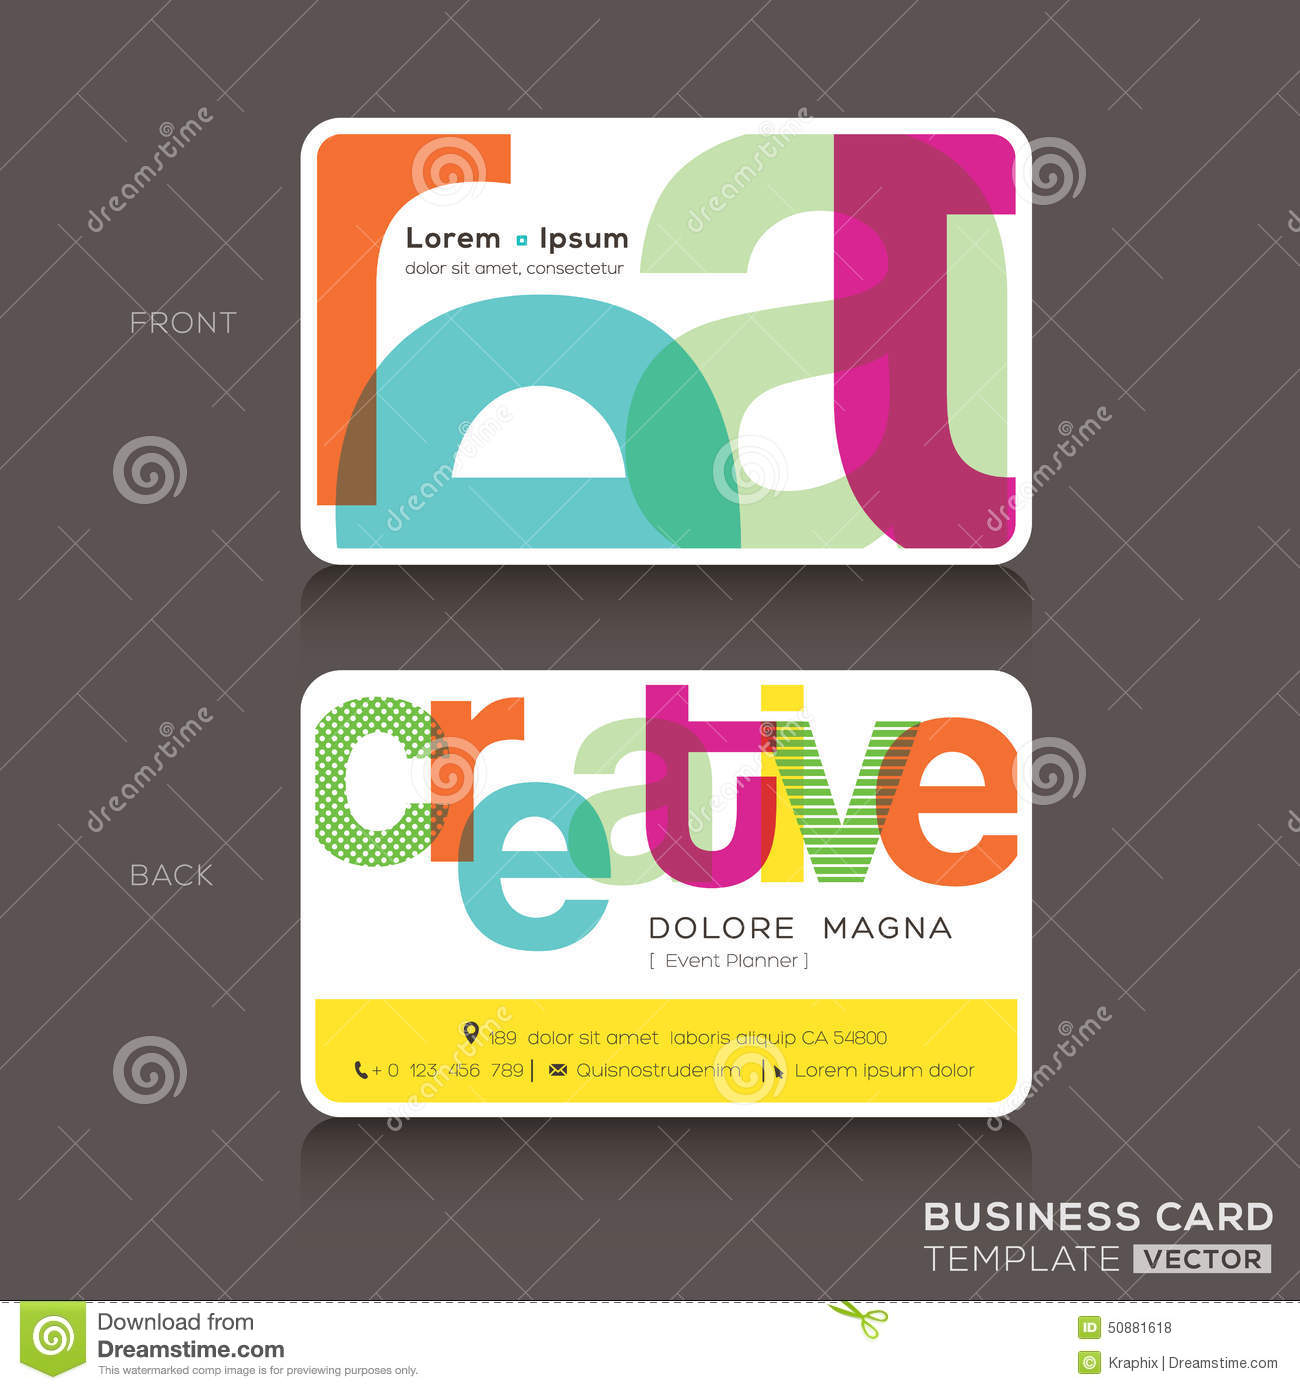 Creative Business cards Design Template layout.